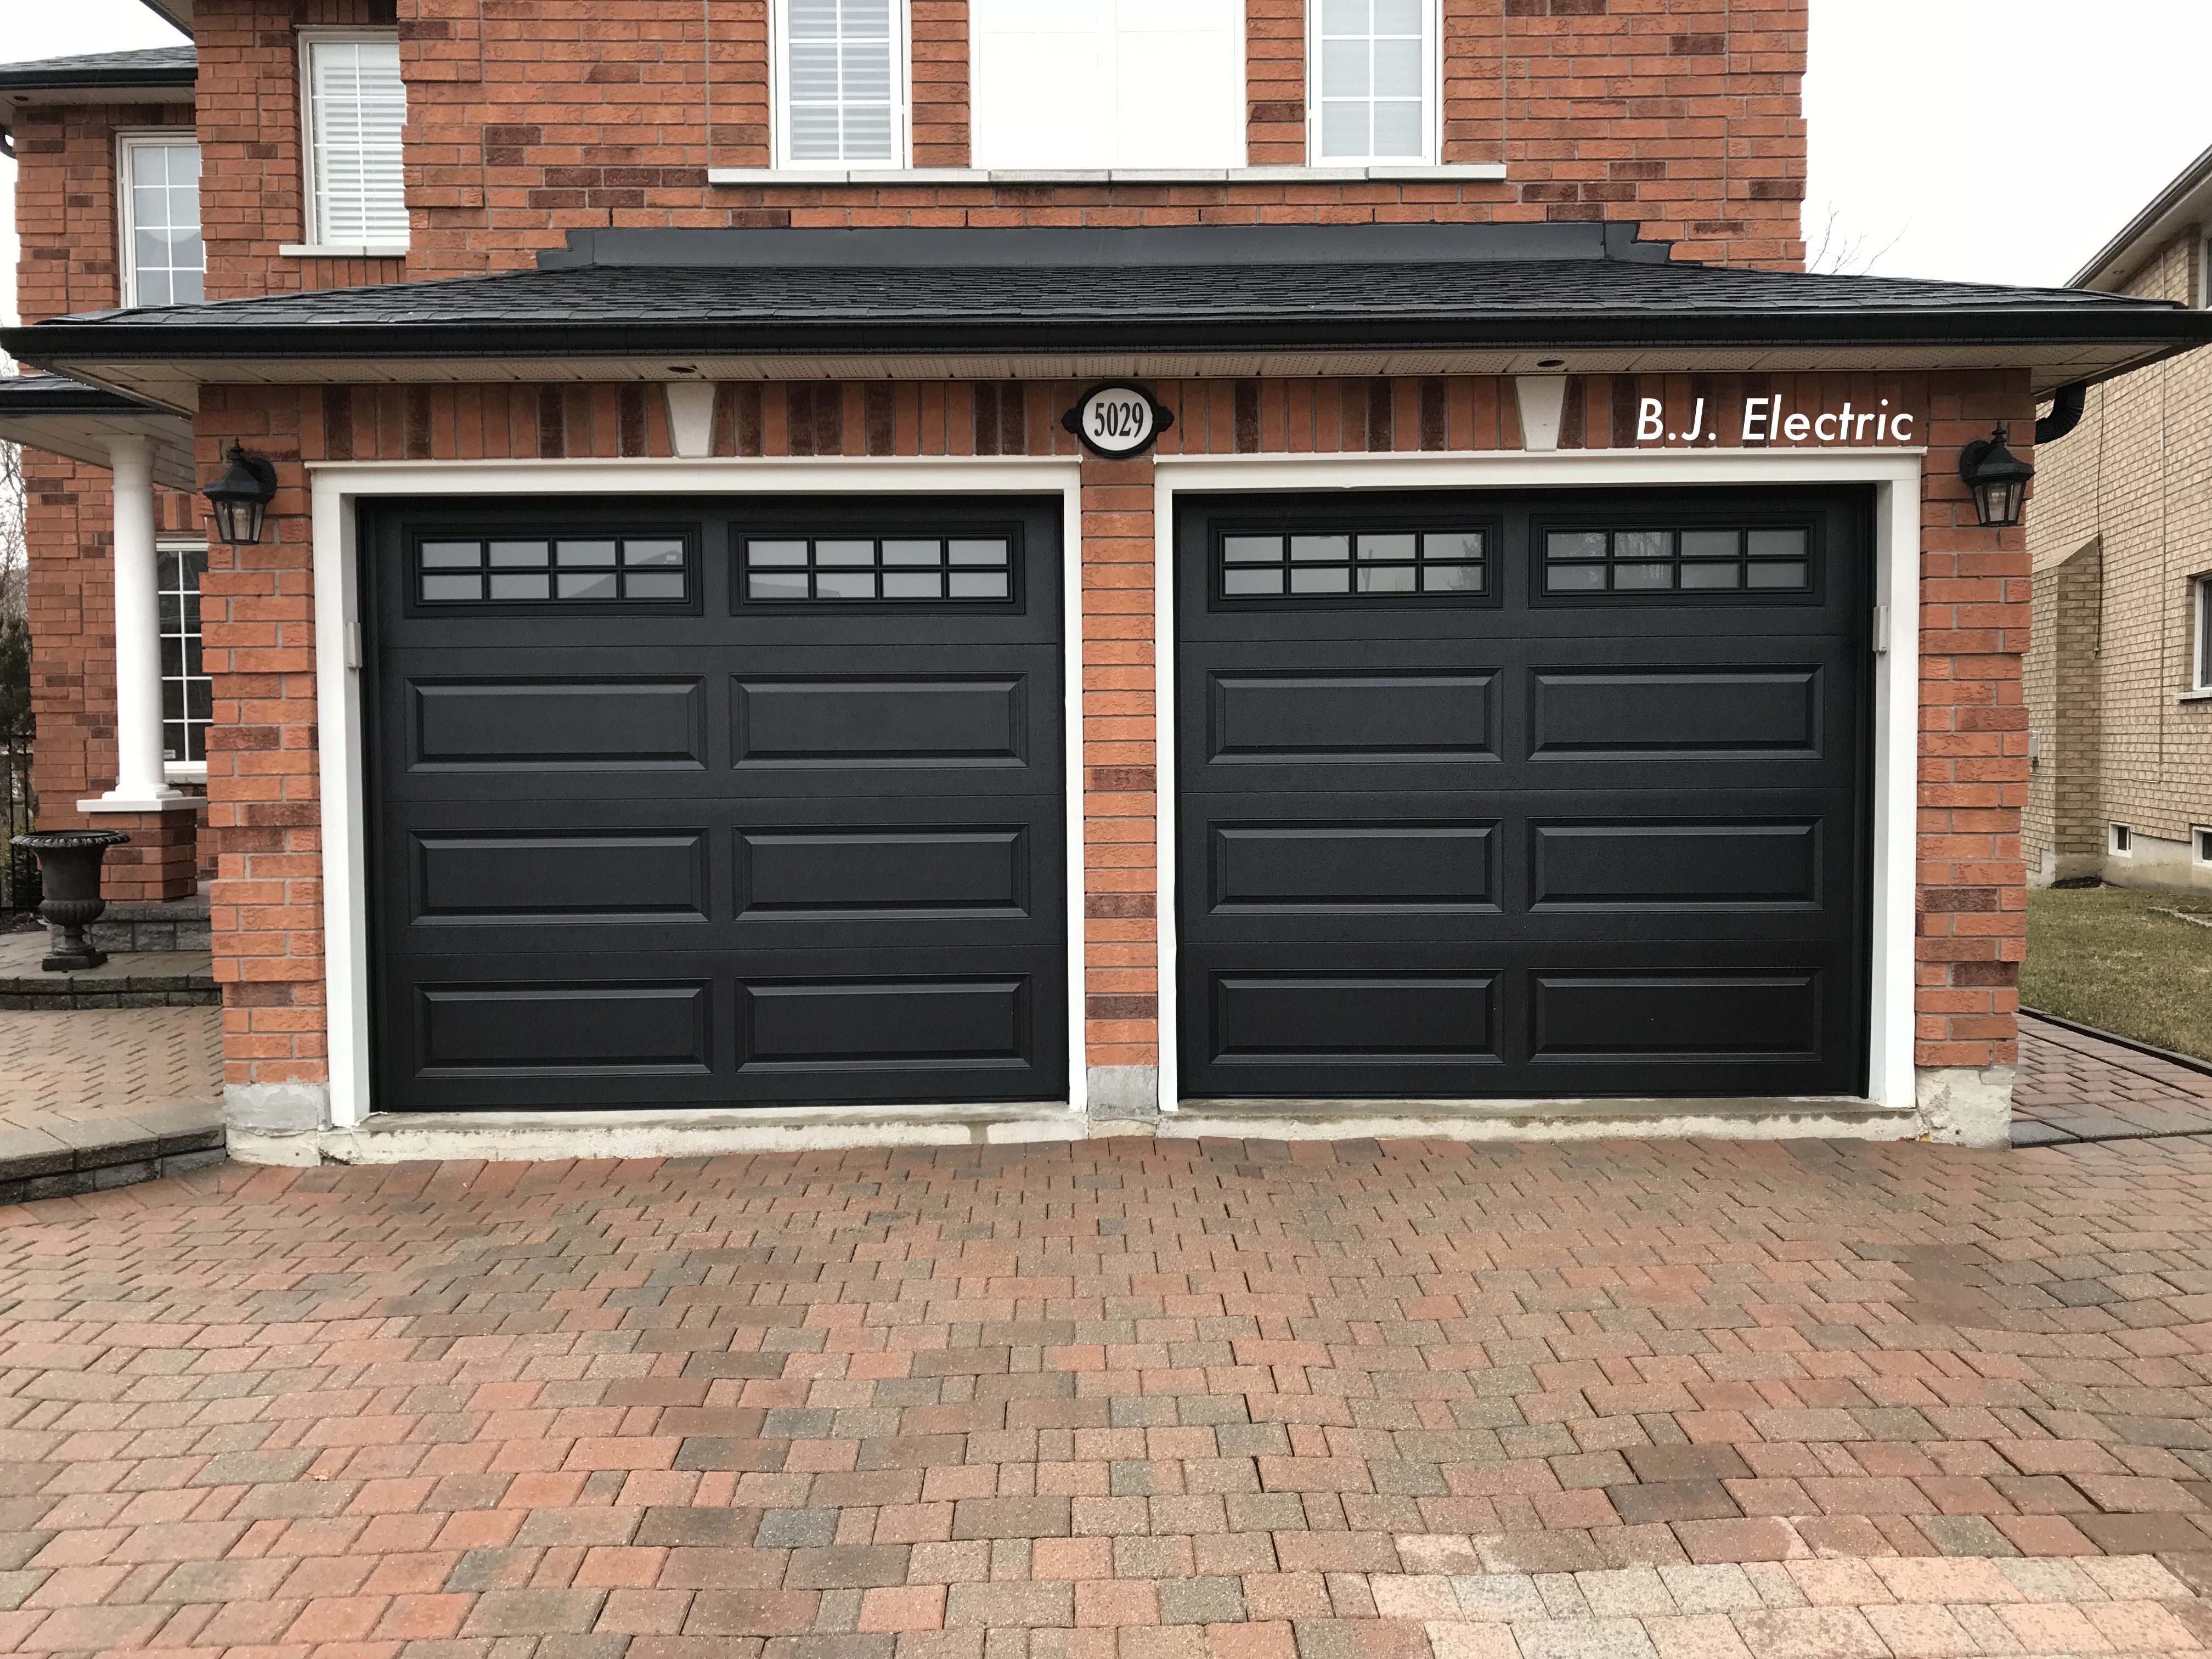 Foam-injected residential garage doors, model 4216 with frosted windows, B.J. Electric